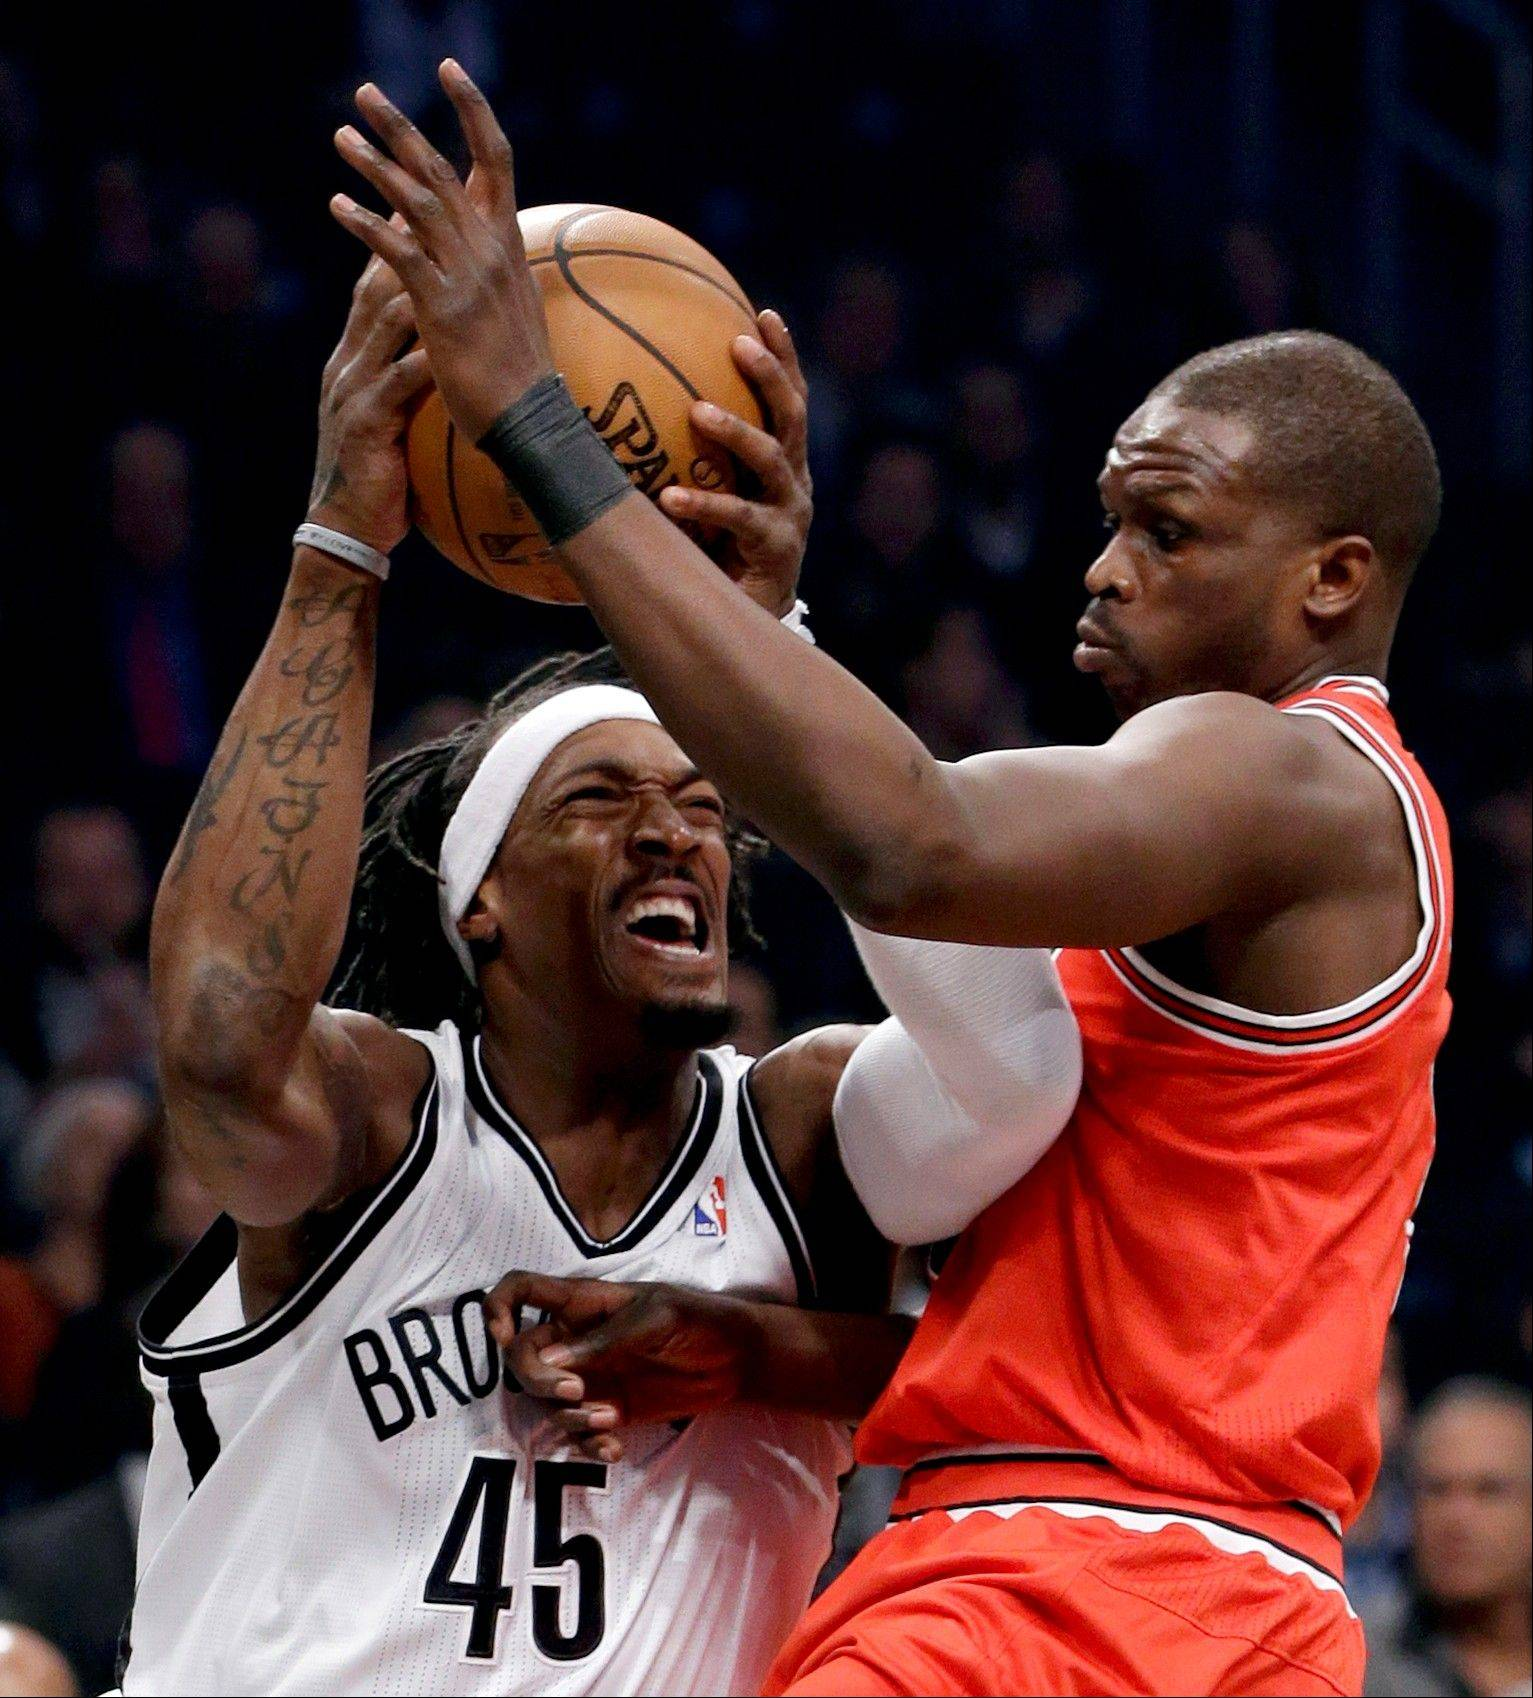 Chicago Bulls forward Luol Deng, right, defends against Brooklyn Nets forward Gerald Wallace (45) in the first half of Game 5 of their first-round NBA basketball playoff series, Monday, April 29, 2013, in New York.